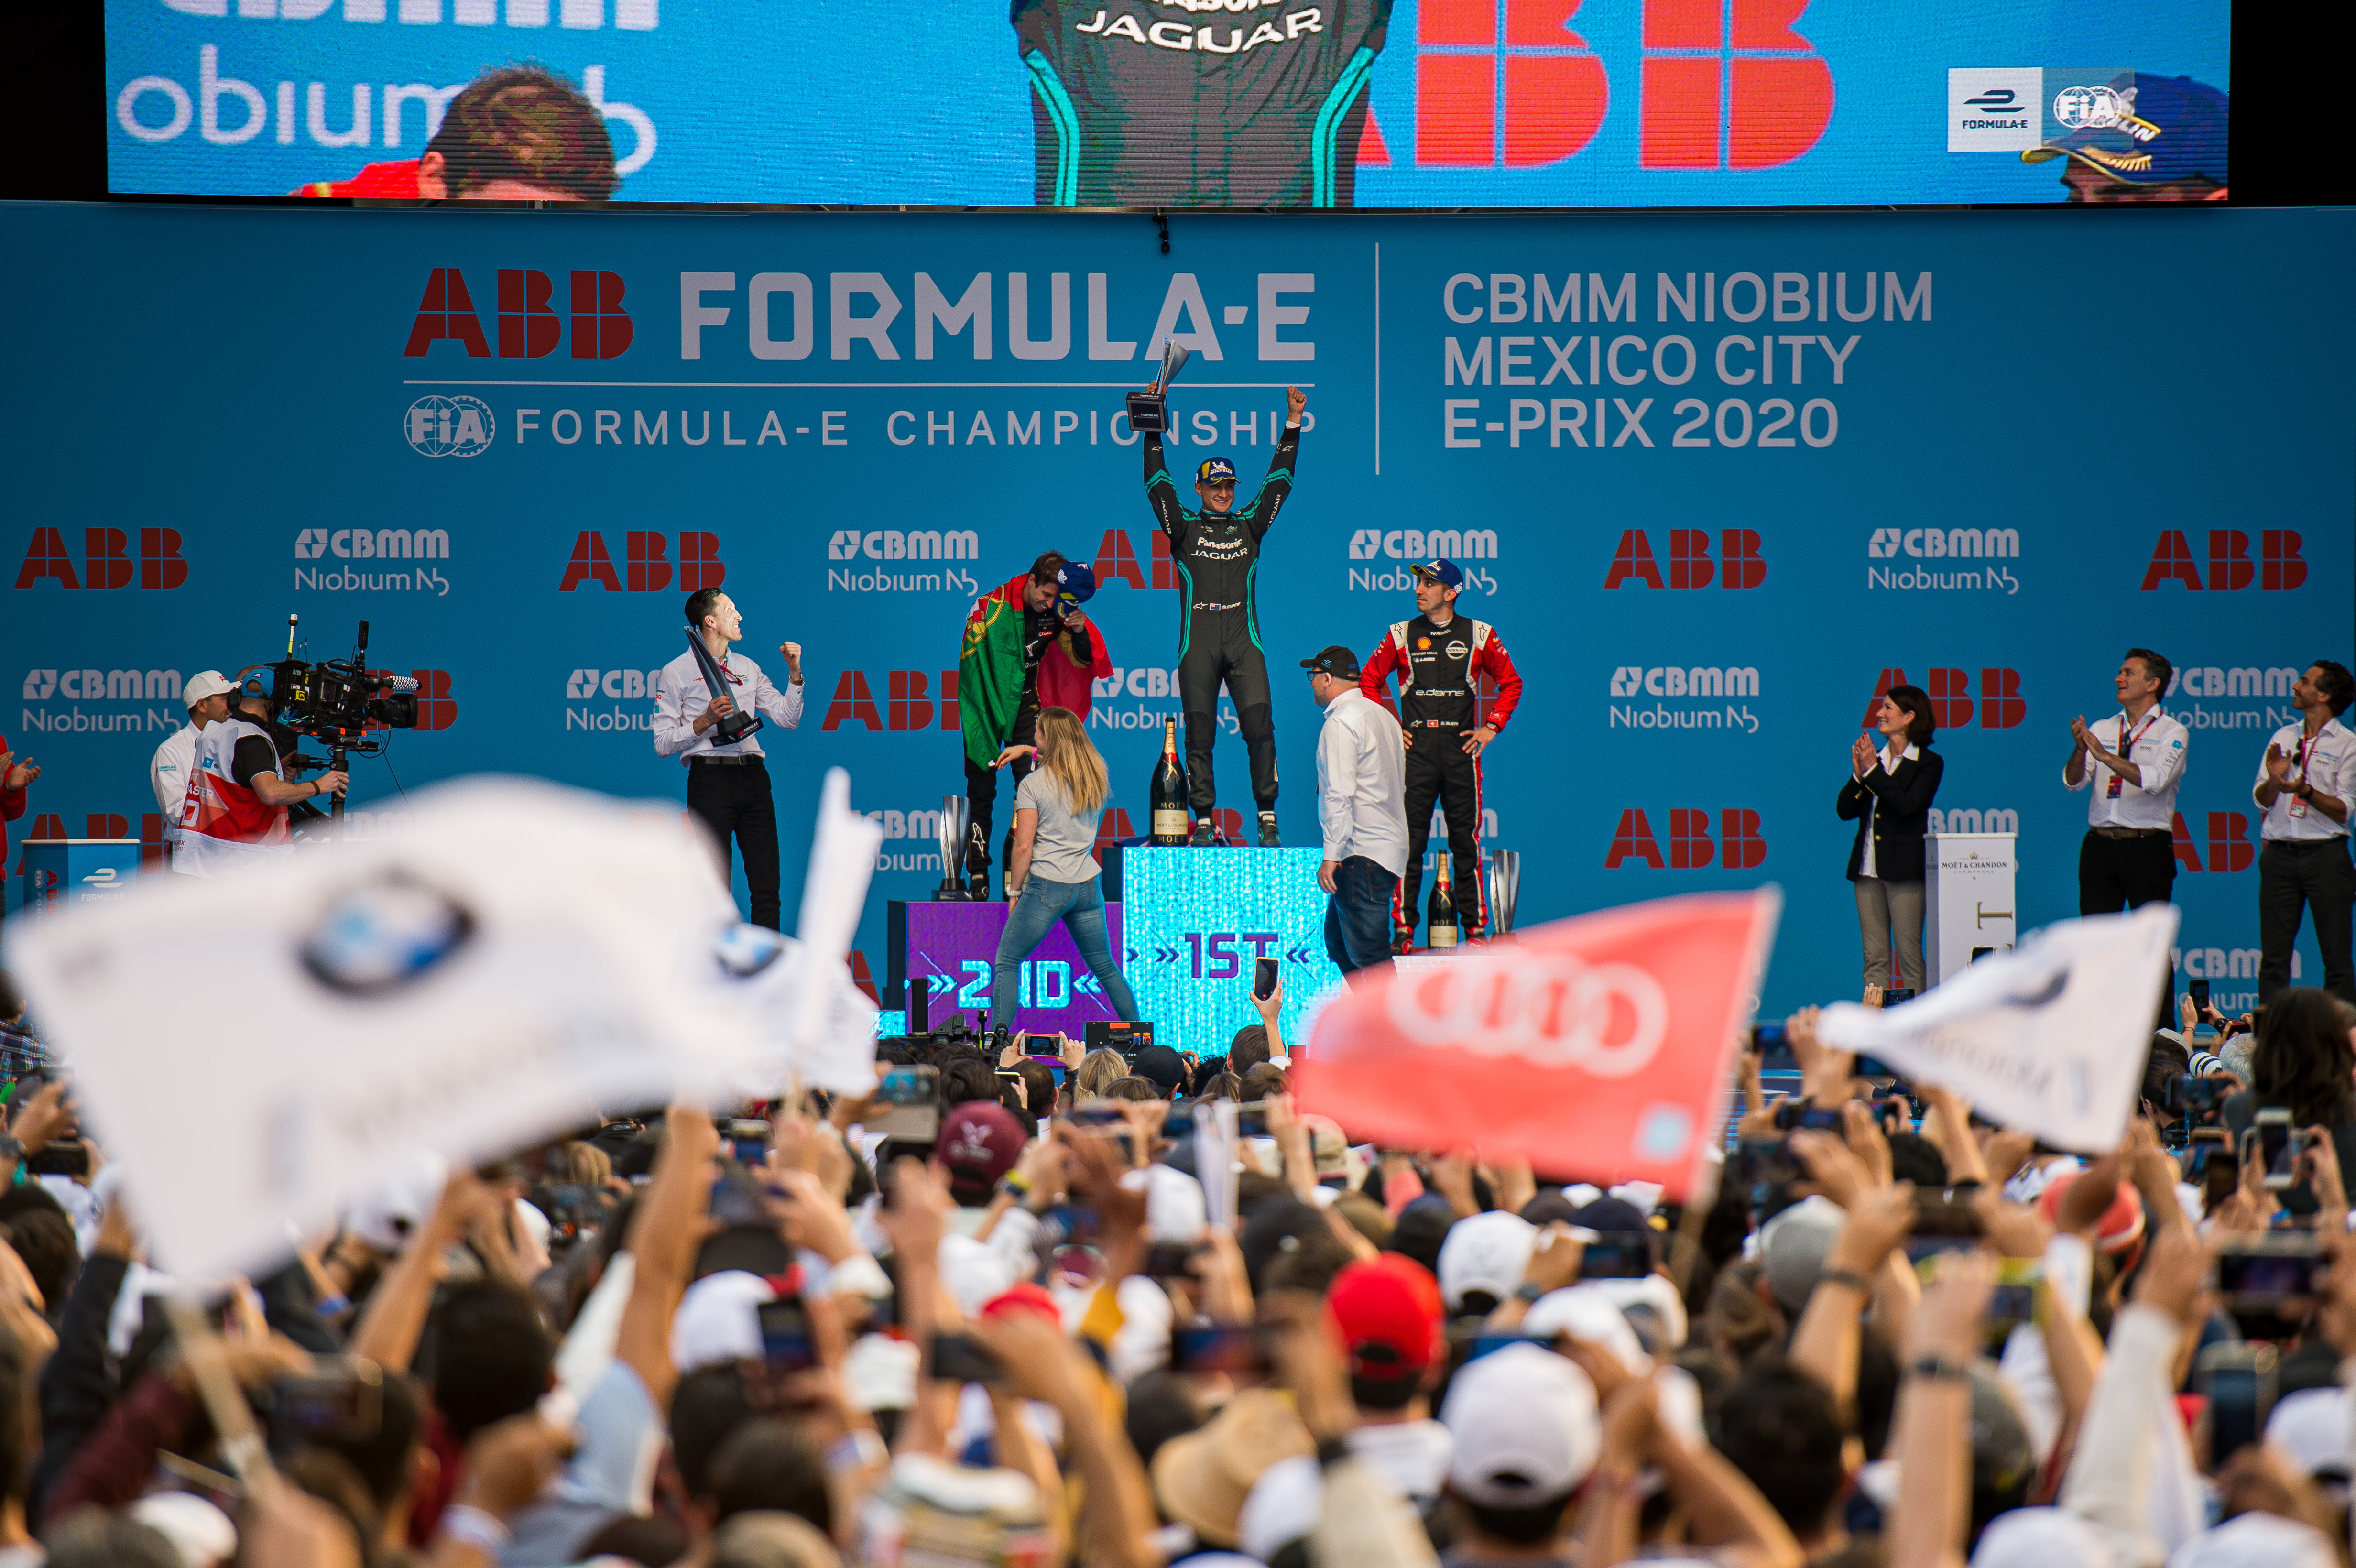 Mitch Evans Jaguar wins Mexico City Formula E 2020